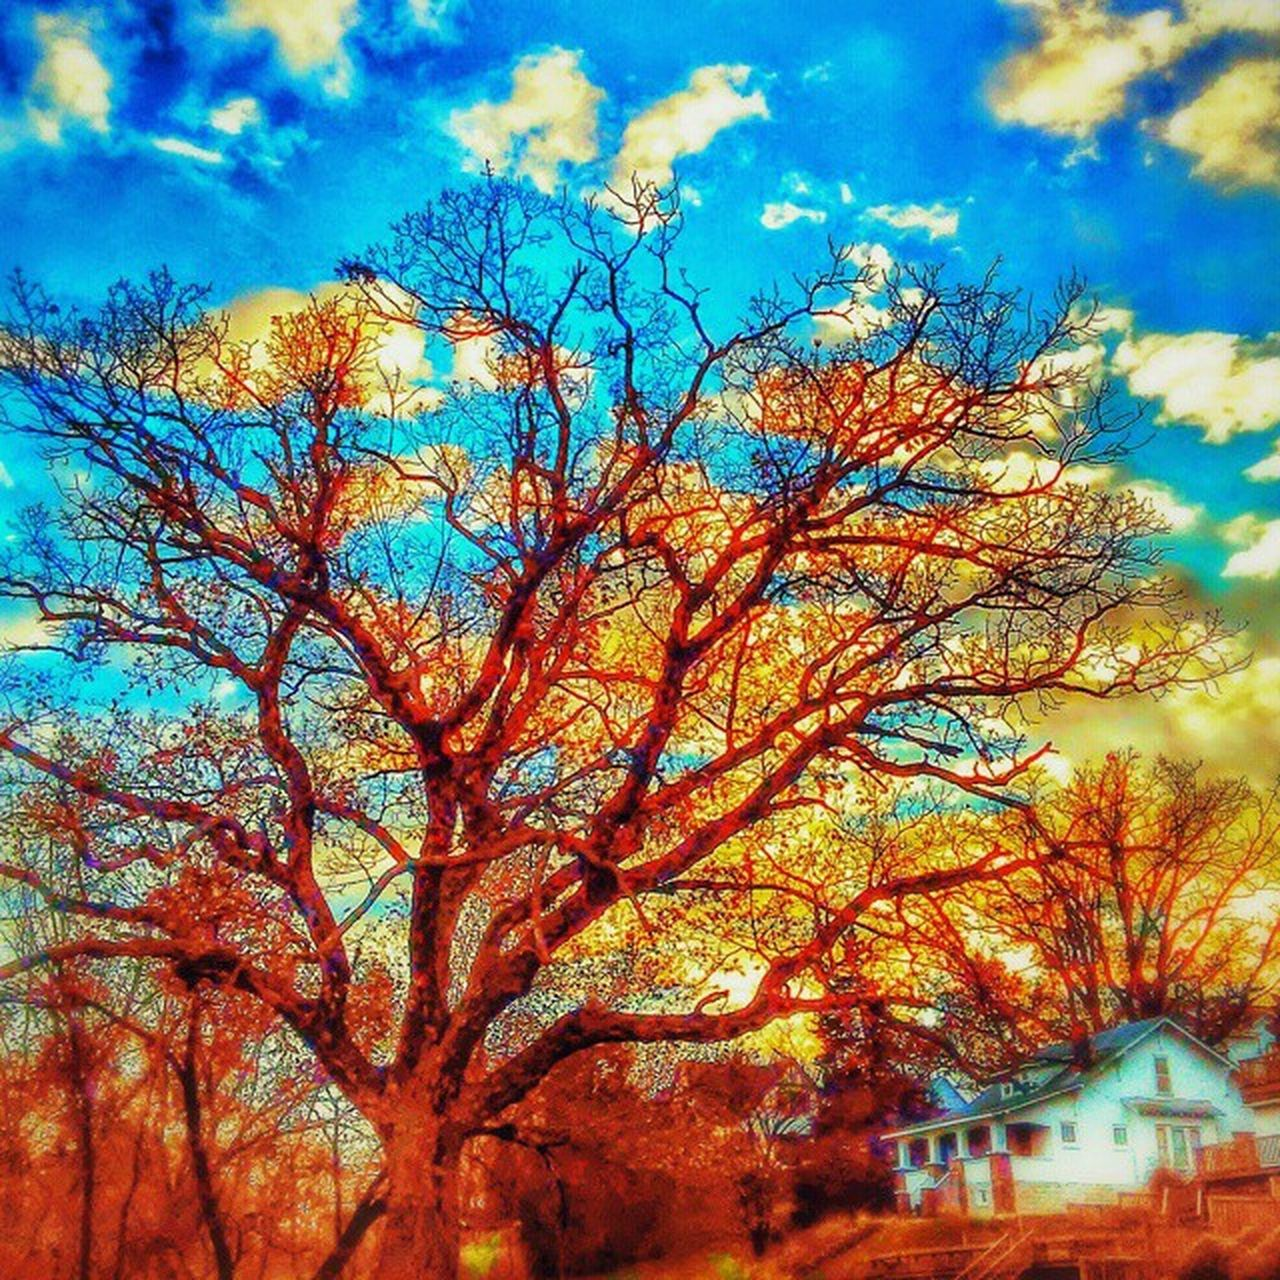 tree, sky, low angle view, no people, beauty in nature, nature, branch, bare tree, outdoors, built structure, day, scenics, tranquility, autumn, growth, building exterior, architecture